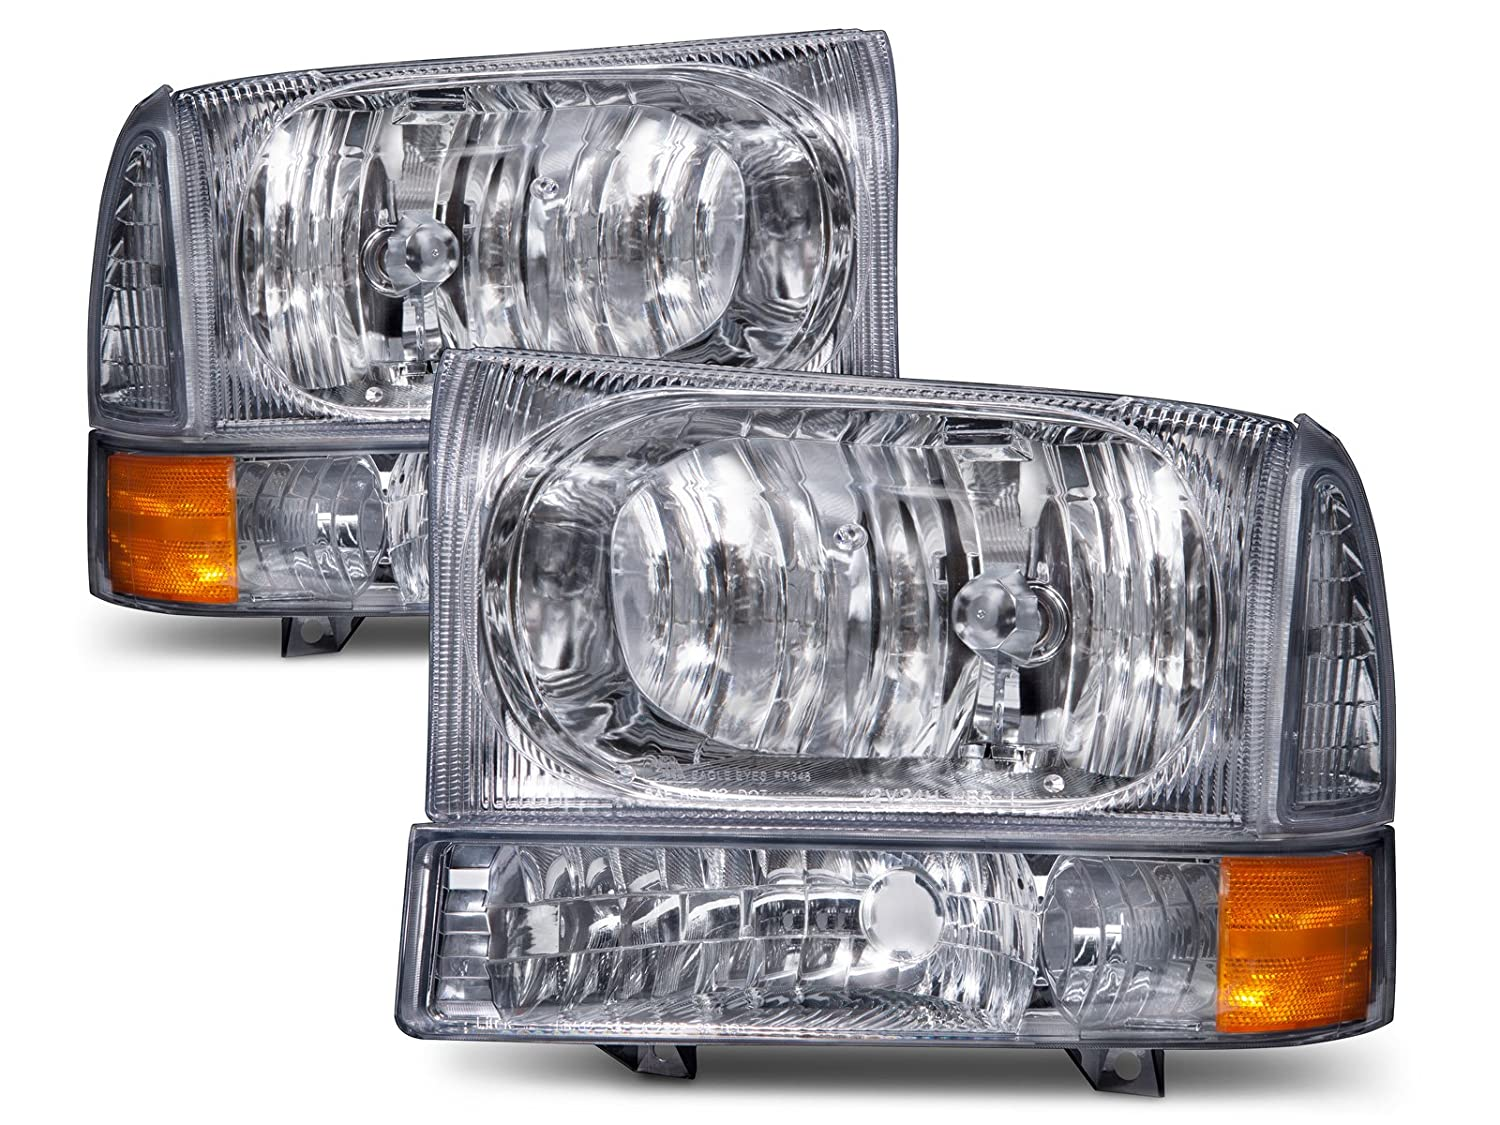 Headlights Depot Replacement for Super Duty/Excursion Euro Headlights 4 Piece Set Driver/Passenger Side HeadlightsDepot FO2502183 FO2503183